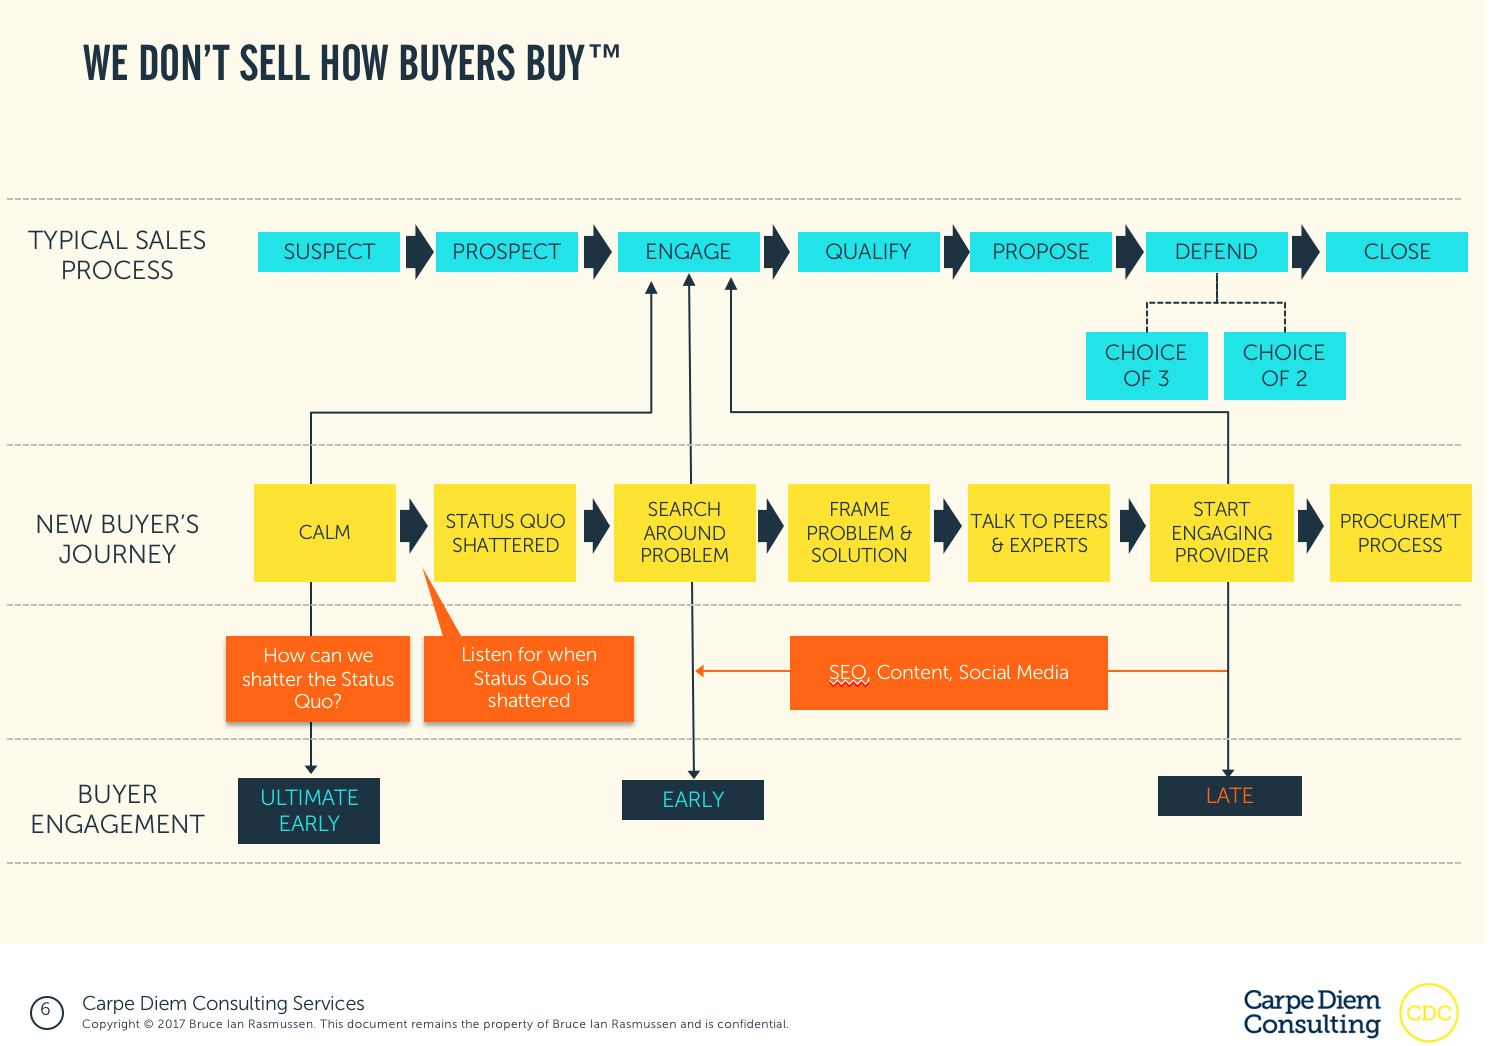 We don't sell how buyers buy